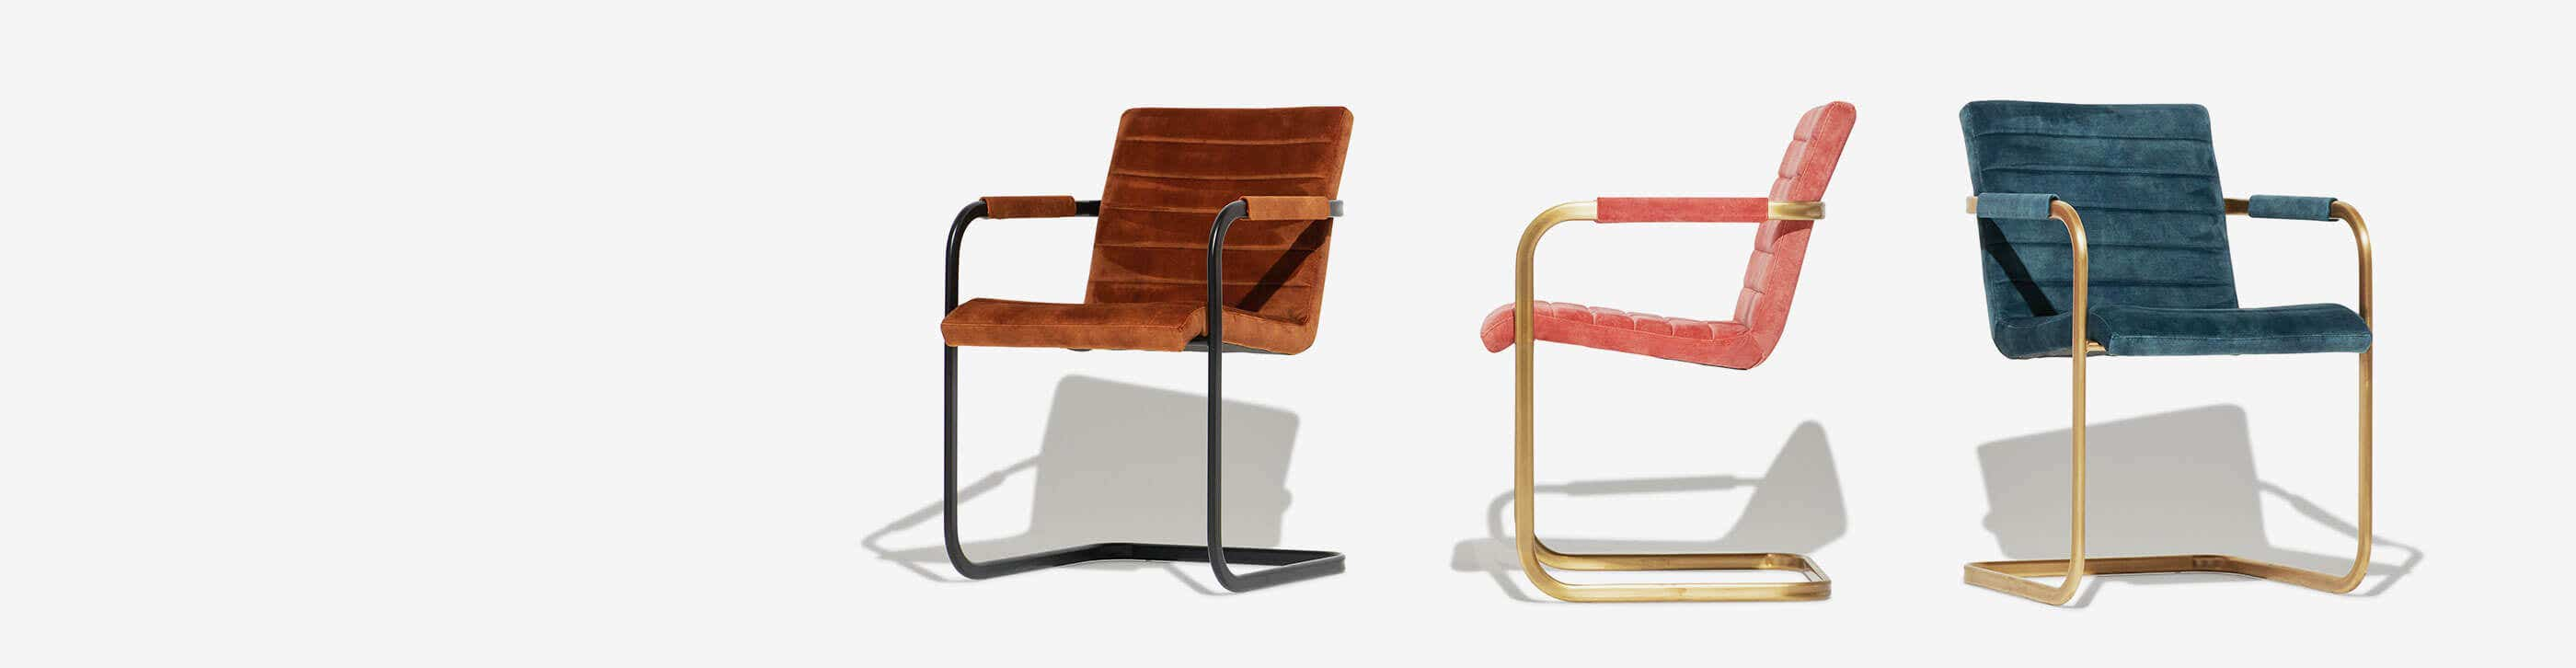 Three Industry West Sable arm chairs in different colors